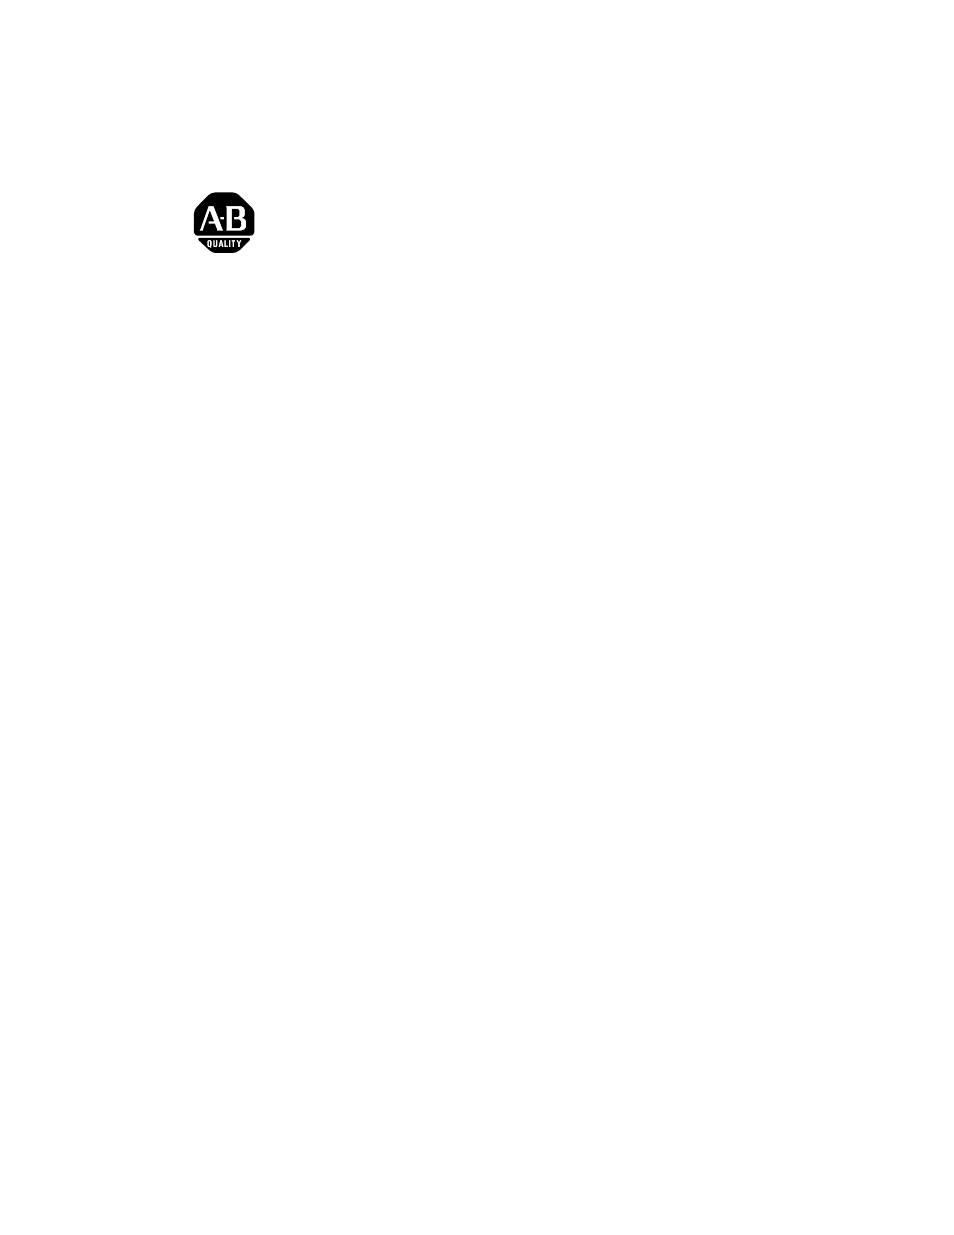 medium resolution of rockwell automation 2711p cbl ex04 ethernet crossover cable install user manual 8 pages